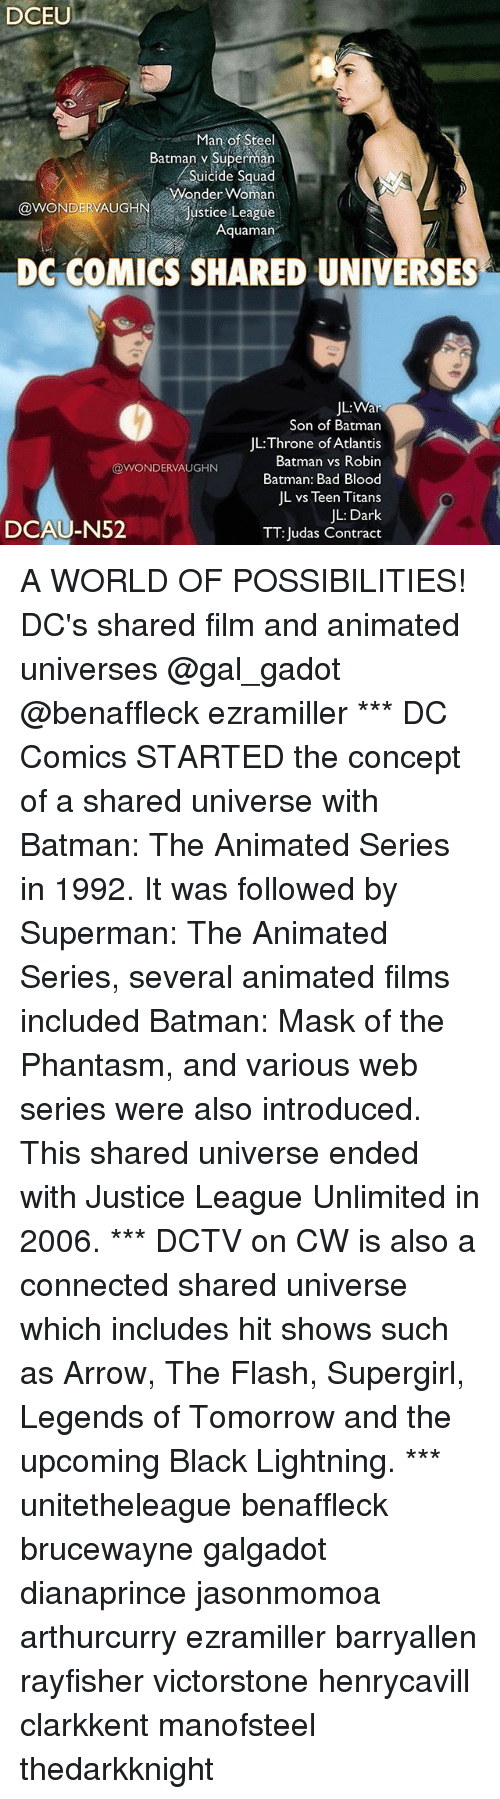 "Bad, Bad Blood, and Batman: DCEU  Man of Steel  Batman v Superman  Suicide Squad  Wonder Woman  @WONDERAUGHN,..""Justice League  Aquaman  DG COMICS SHARED UNIVERSES  JL:  Son of Batman  JL:Throne of Atlantis  Batman vs Robin  Batman: Bad Blood  JL vs Teen Titans  JL: Dark  TT: Judas Contract  @WONDERVAUGHN  DCAU-N52 A WORLD OF POSSIBILITIES! DC's shared film and animated universes @gal_gadot @benaffleck ezramiller *** DC Comics STARTED the concept of a shared universe with Batman: The Animated Series in 1992. It was followed by Superman: The Animated Series, several animated films included Batman: Mask of the Phantasm, and various web series were also introduced. This shared universe ended with Justice League Unlimited in 2006. *** DCTV on CW is also a connected shared universe which includes hit shows such as Arrow, The Flash, Supergirl, Legends of Tomorrow and the upcoming Black Lightning. *** unitetheleague benaffleck brucewayne galgadot dianaprince jasonmomoa arthurcurry ezramiller barryallen rayfisher victorstone henrycavill clarkkent manofsteel thedarkknight"